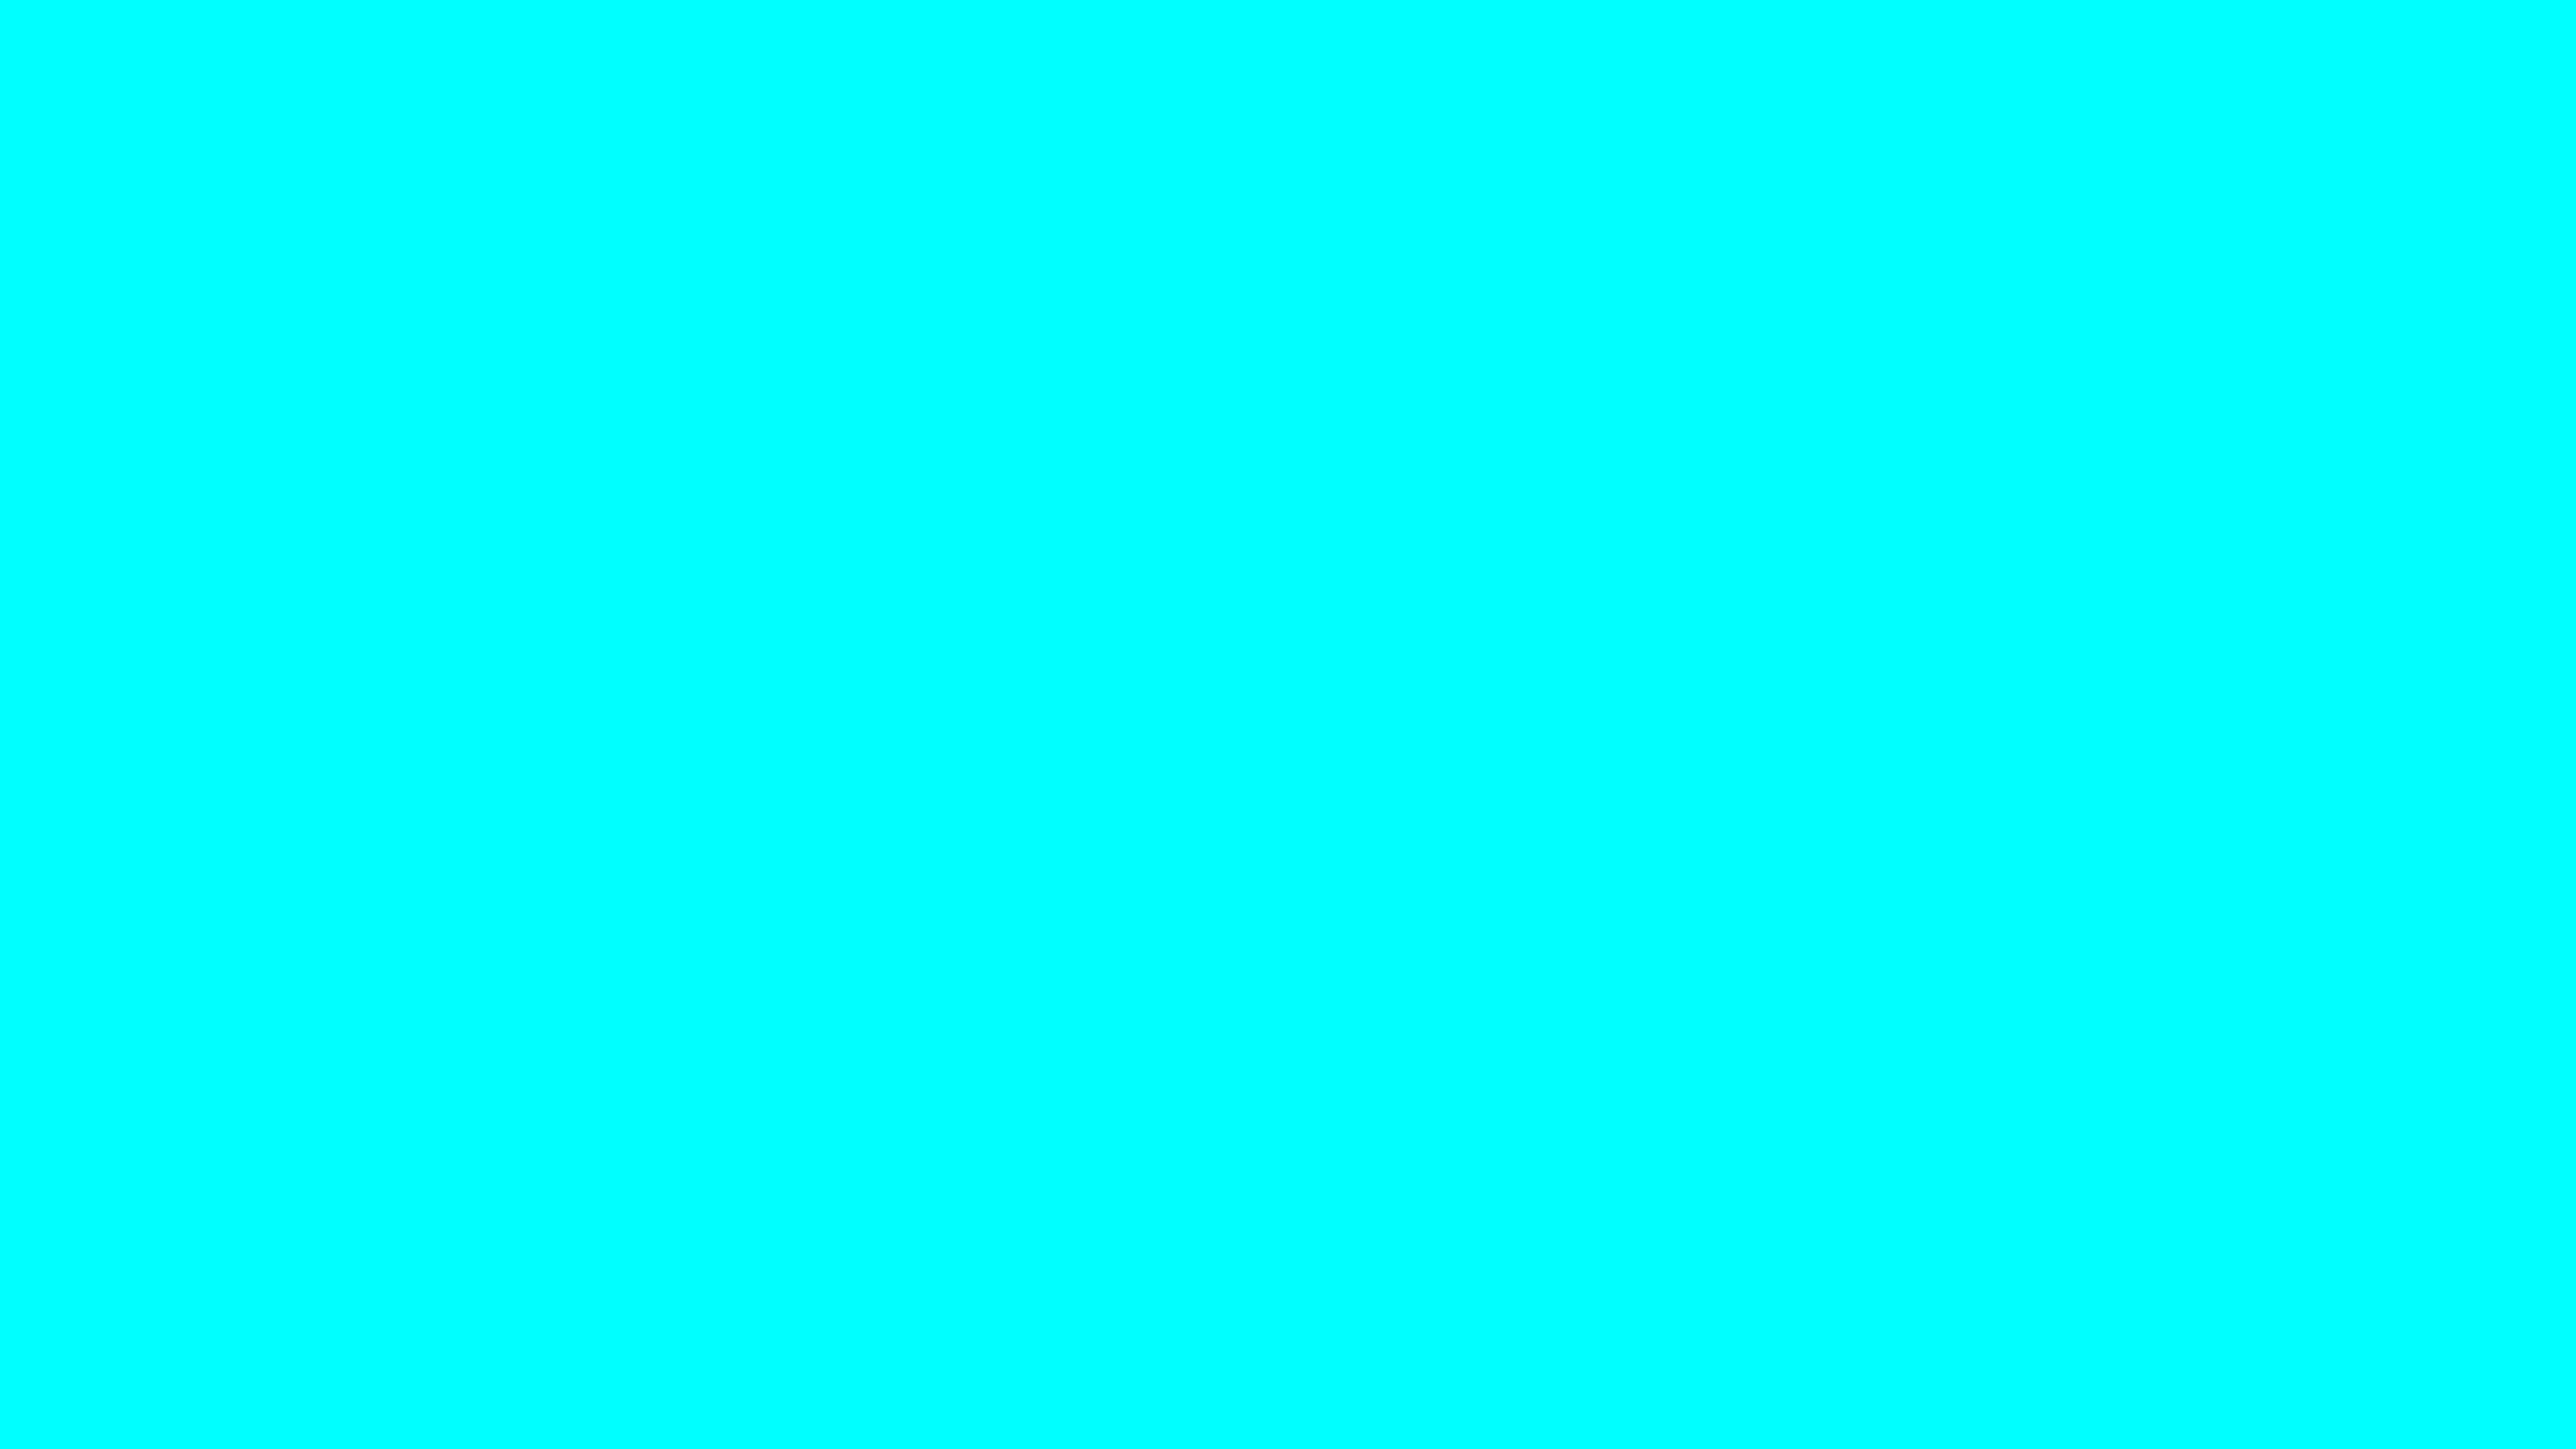 5120x2880 Electric Cyan Solid Color Background